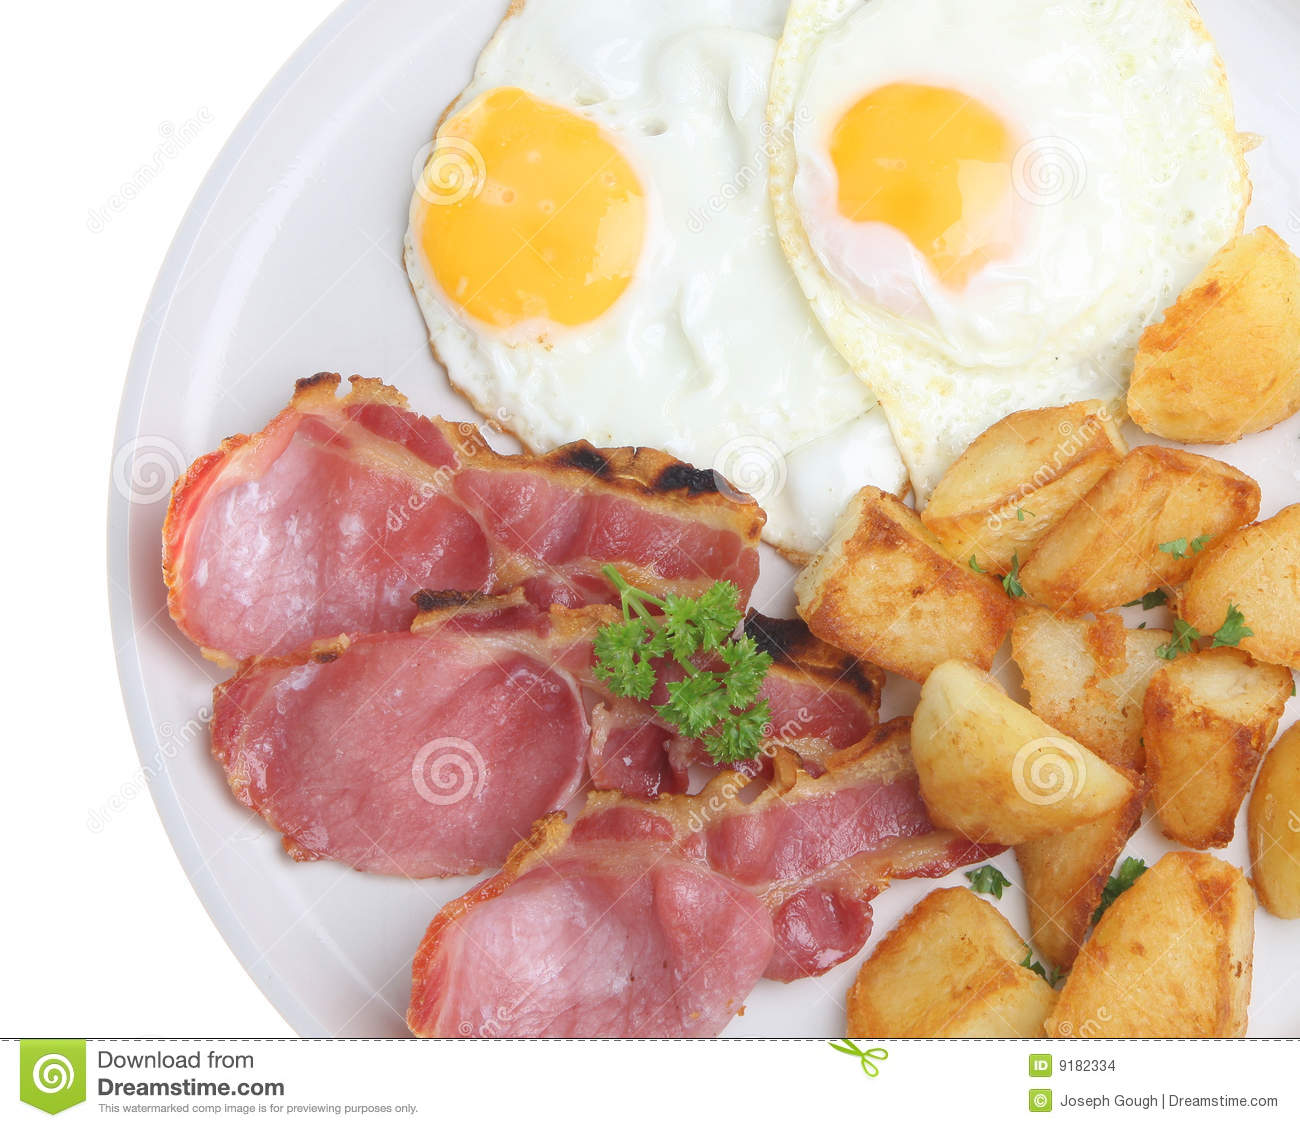 Bacon, Eggs And Fried Potatoes Stock Images - Image: 9182334